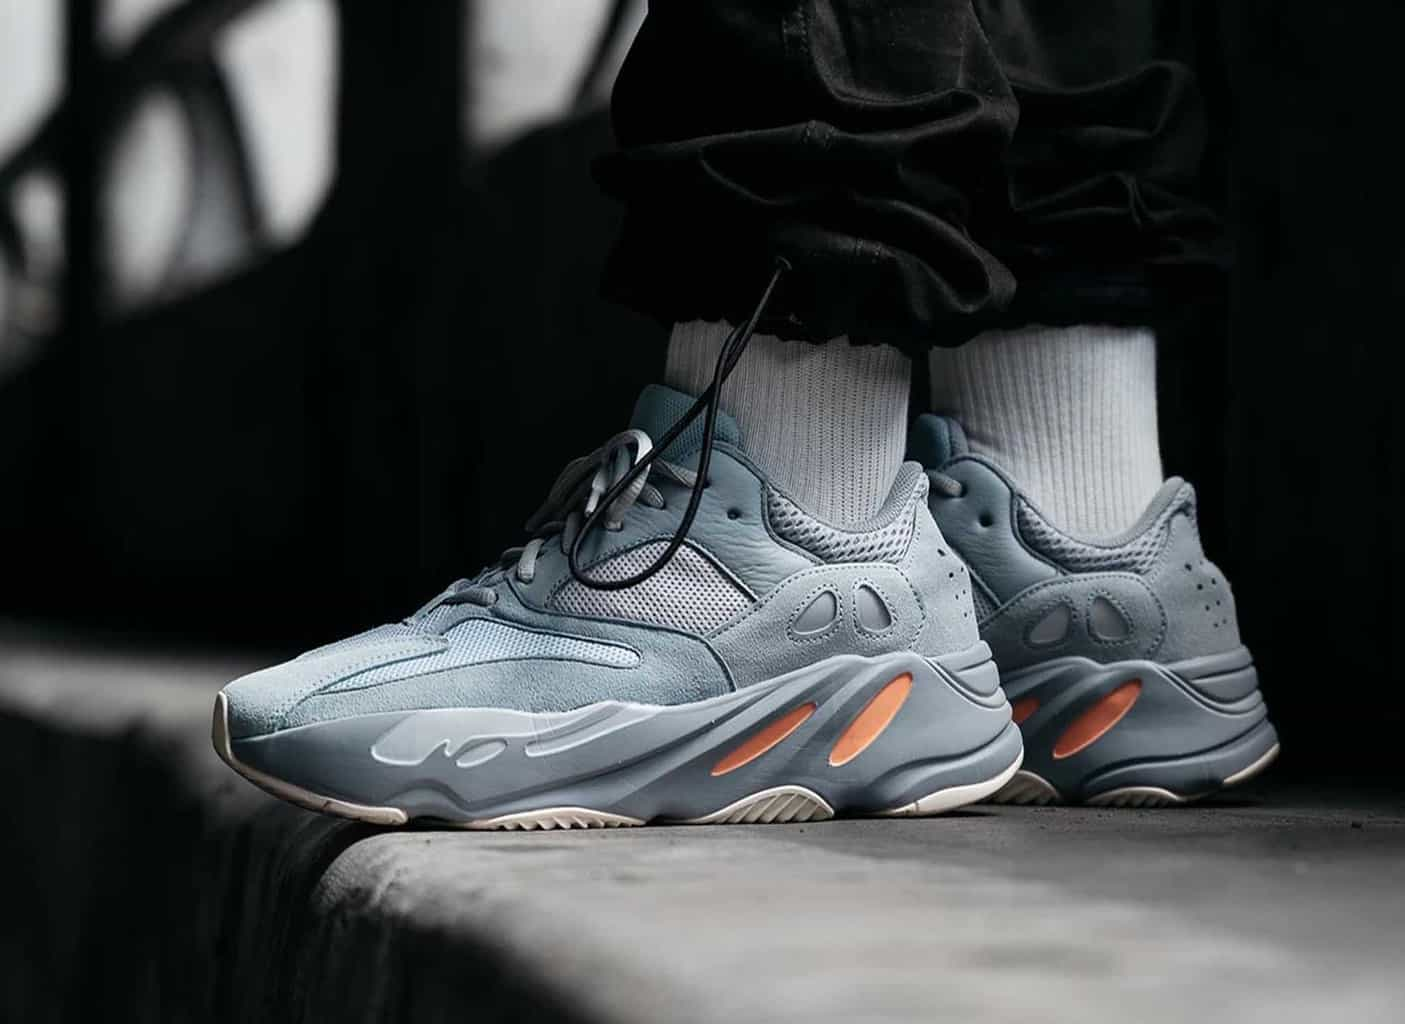 b91b4a4a358 Adidas YEEZY Boost 700 to Release New